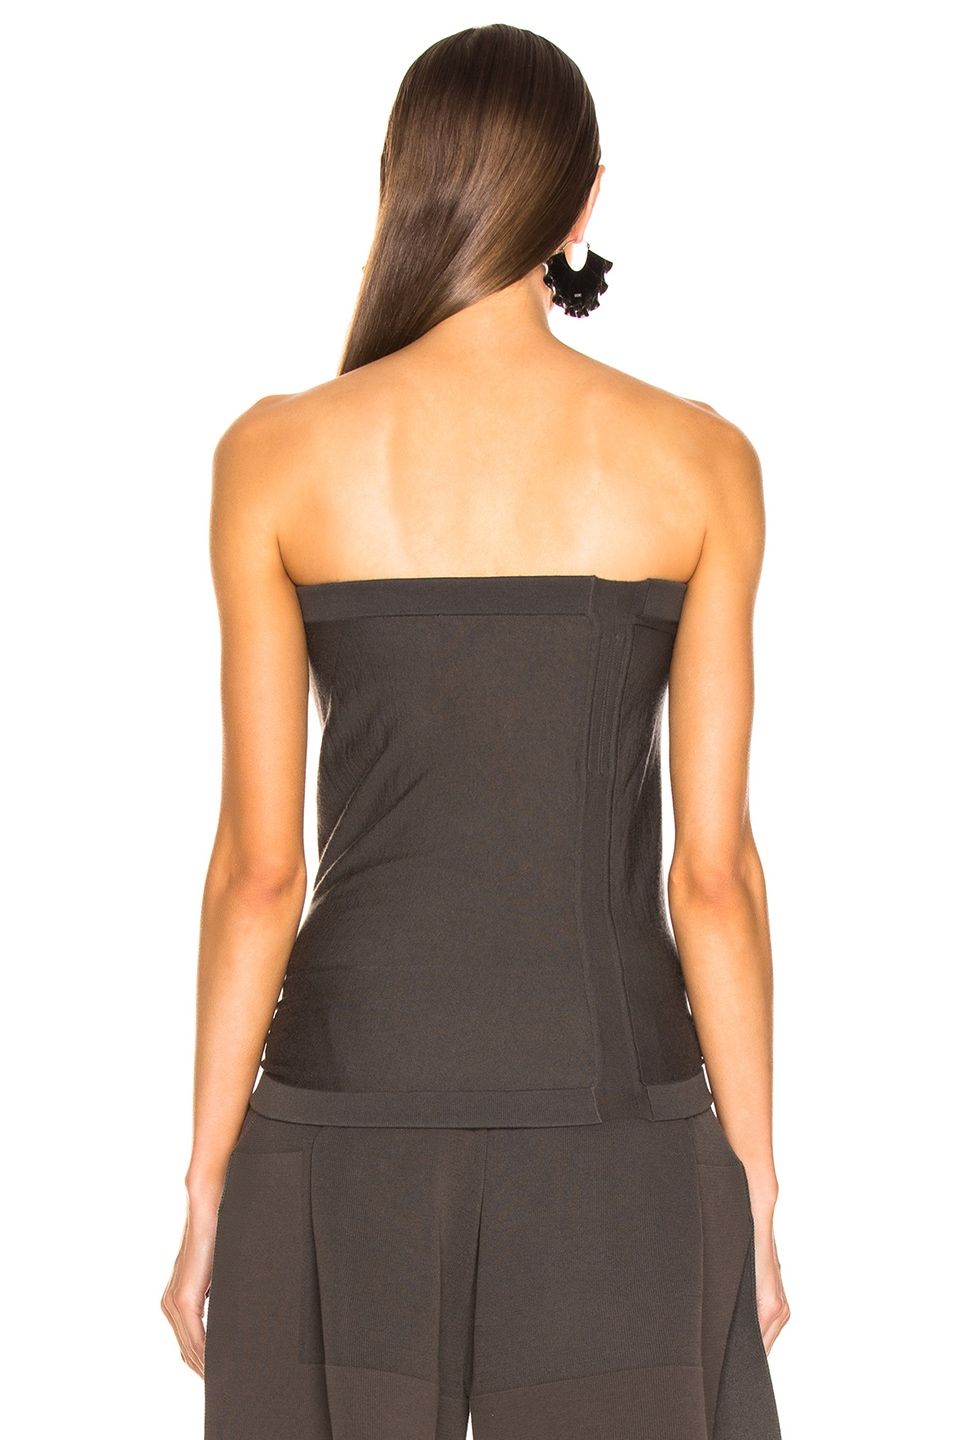 Image 3 of Rick Owens Maglia Bustier Top in Dark dust